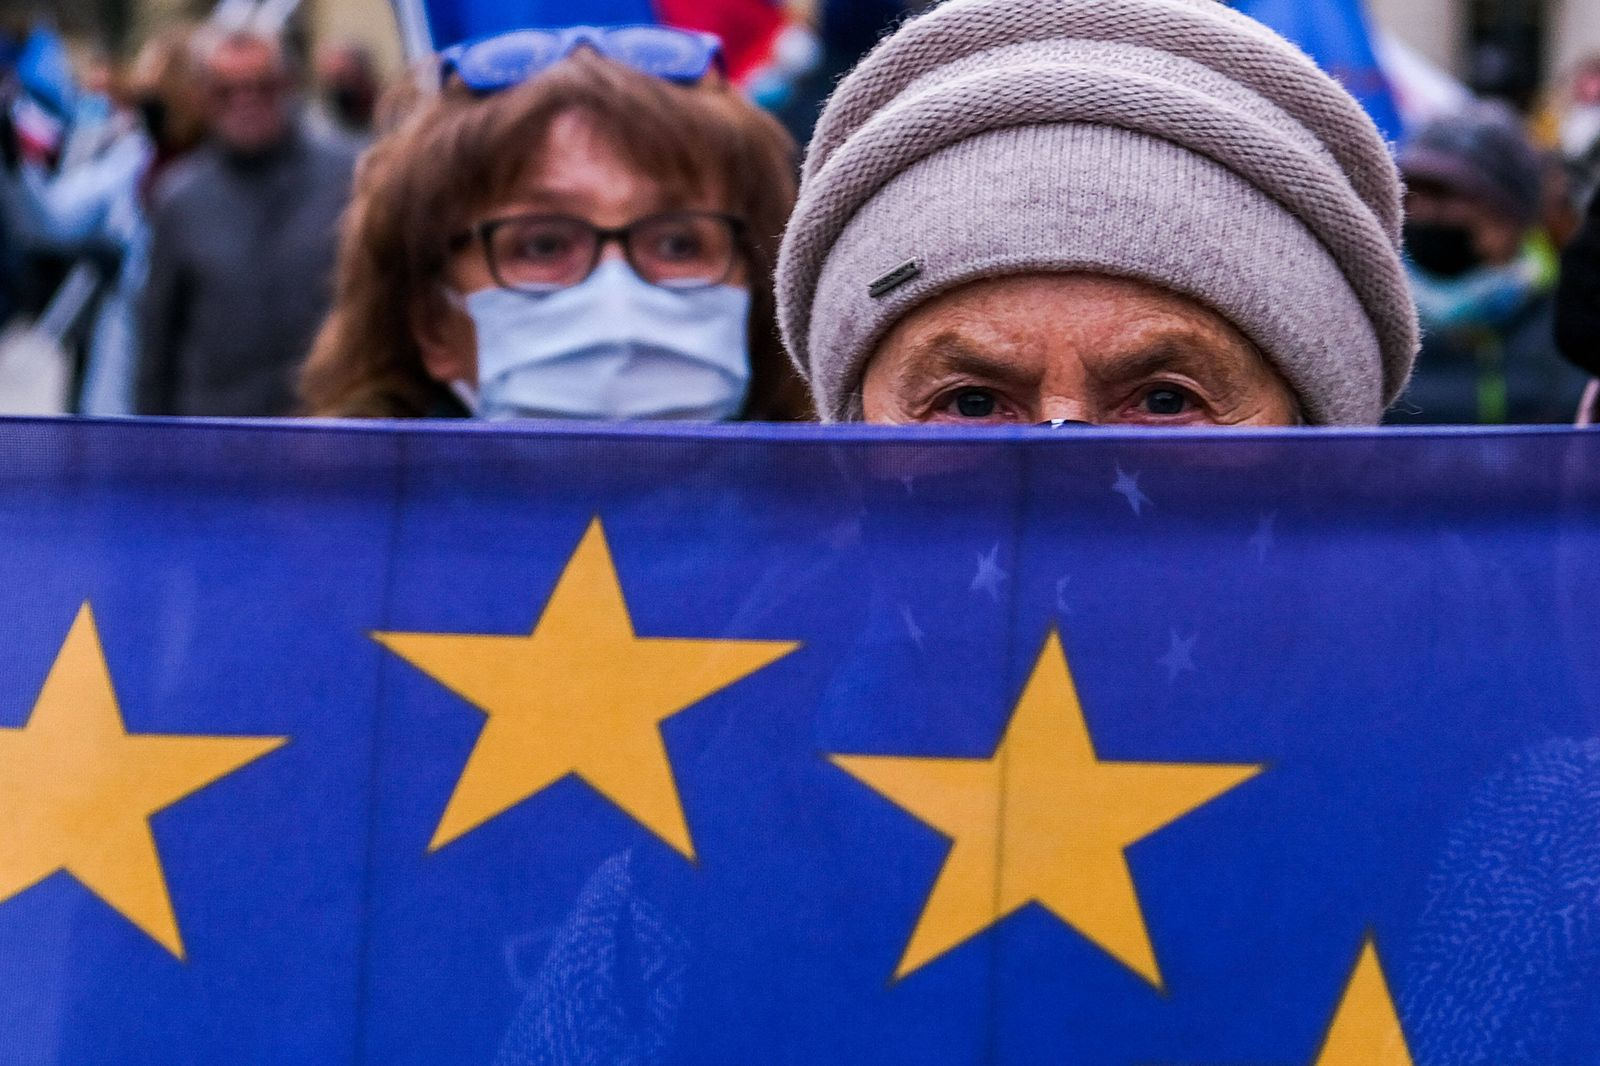 November 22, 2020, Krakow, Poland: An old woman holding the European Union flag during the demonstration..People protes